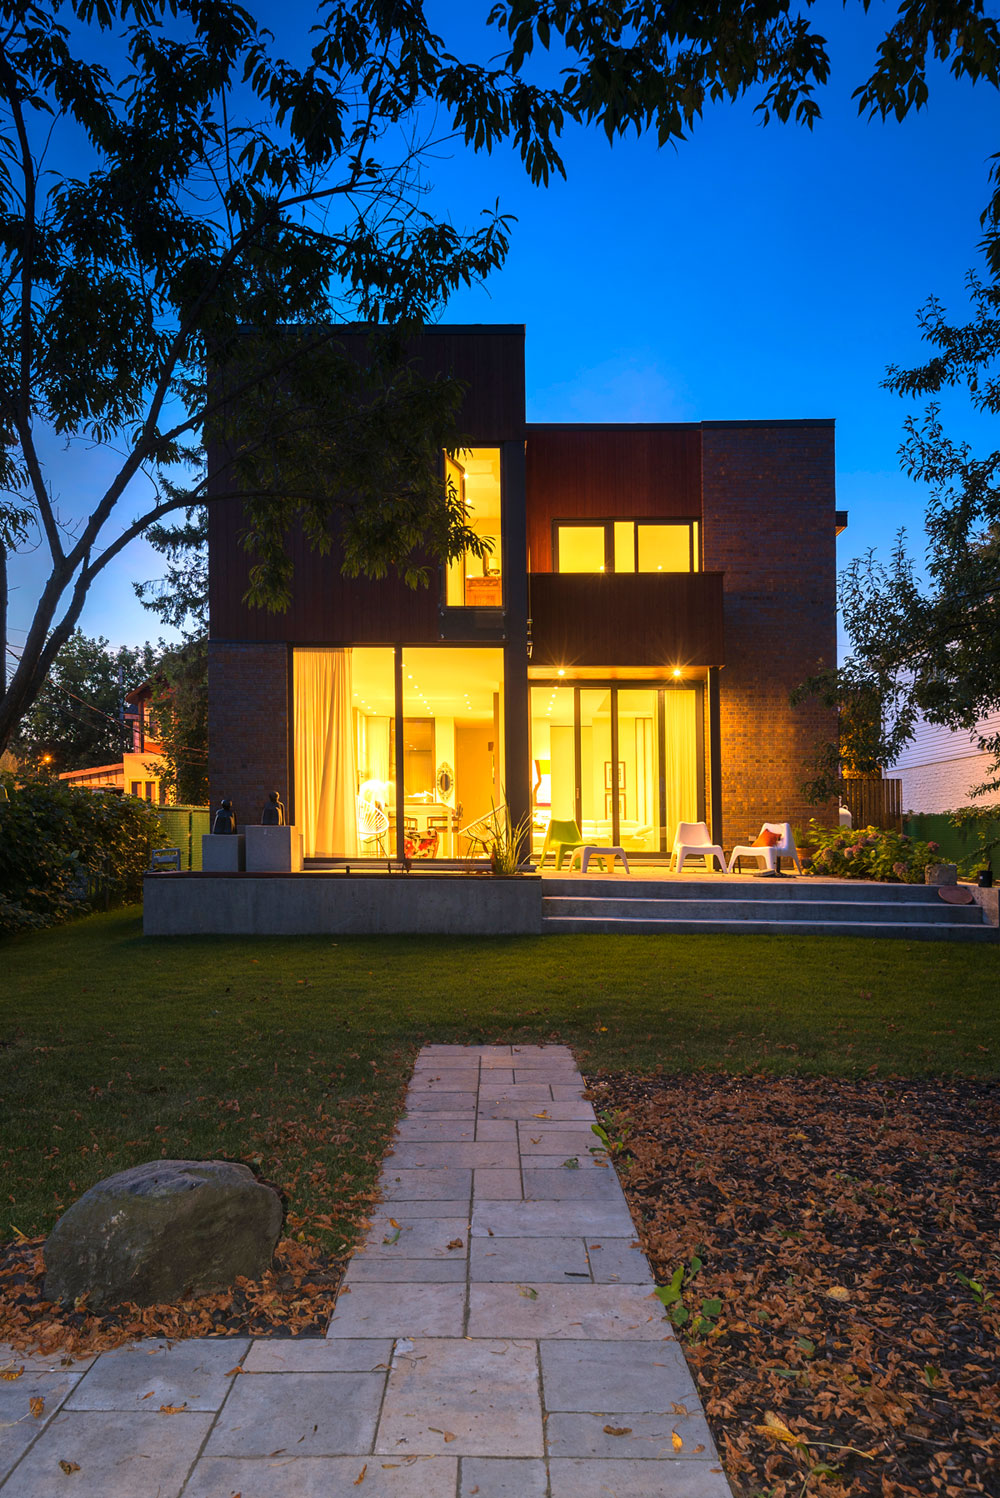 Home in Montreal by Anik Peloquin Architecte (13)